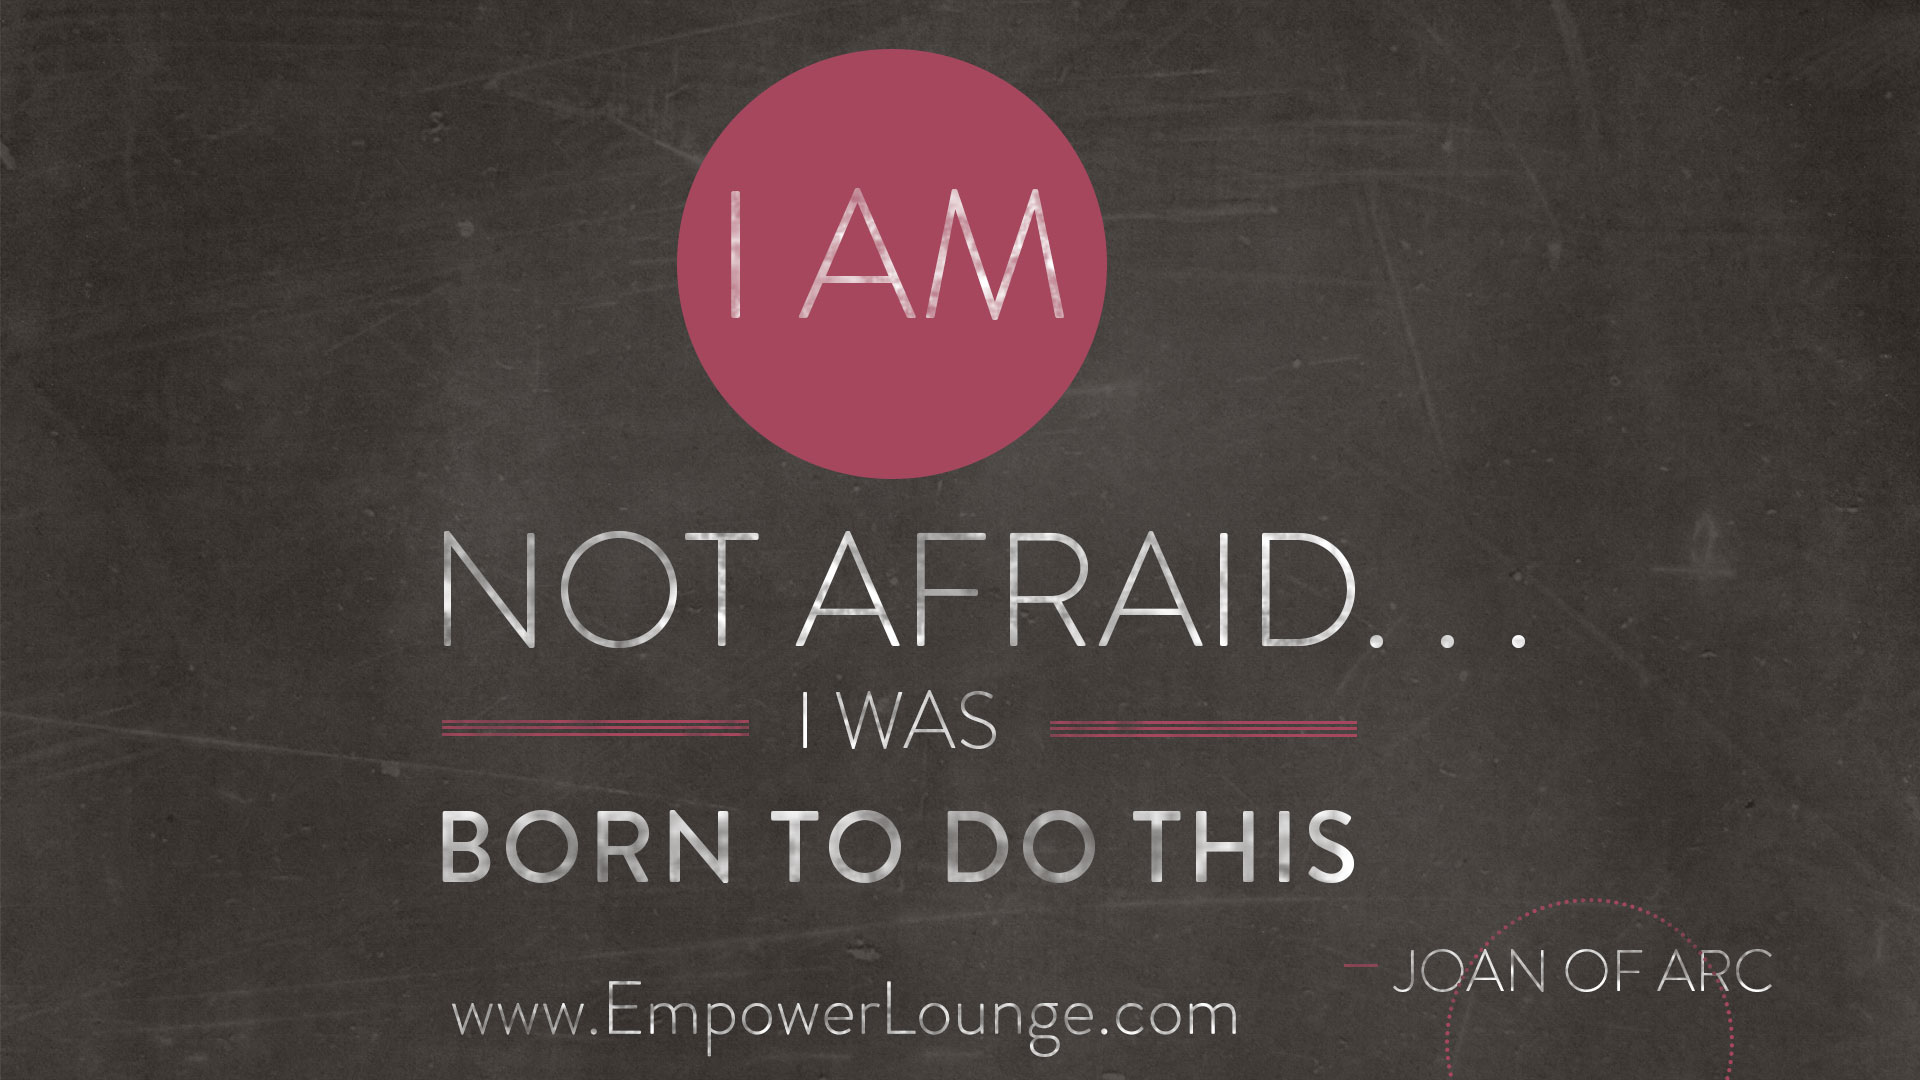 Quotes For Women Inspiring Quoteswomen Trailblazers  Empower Lounge